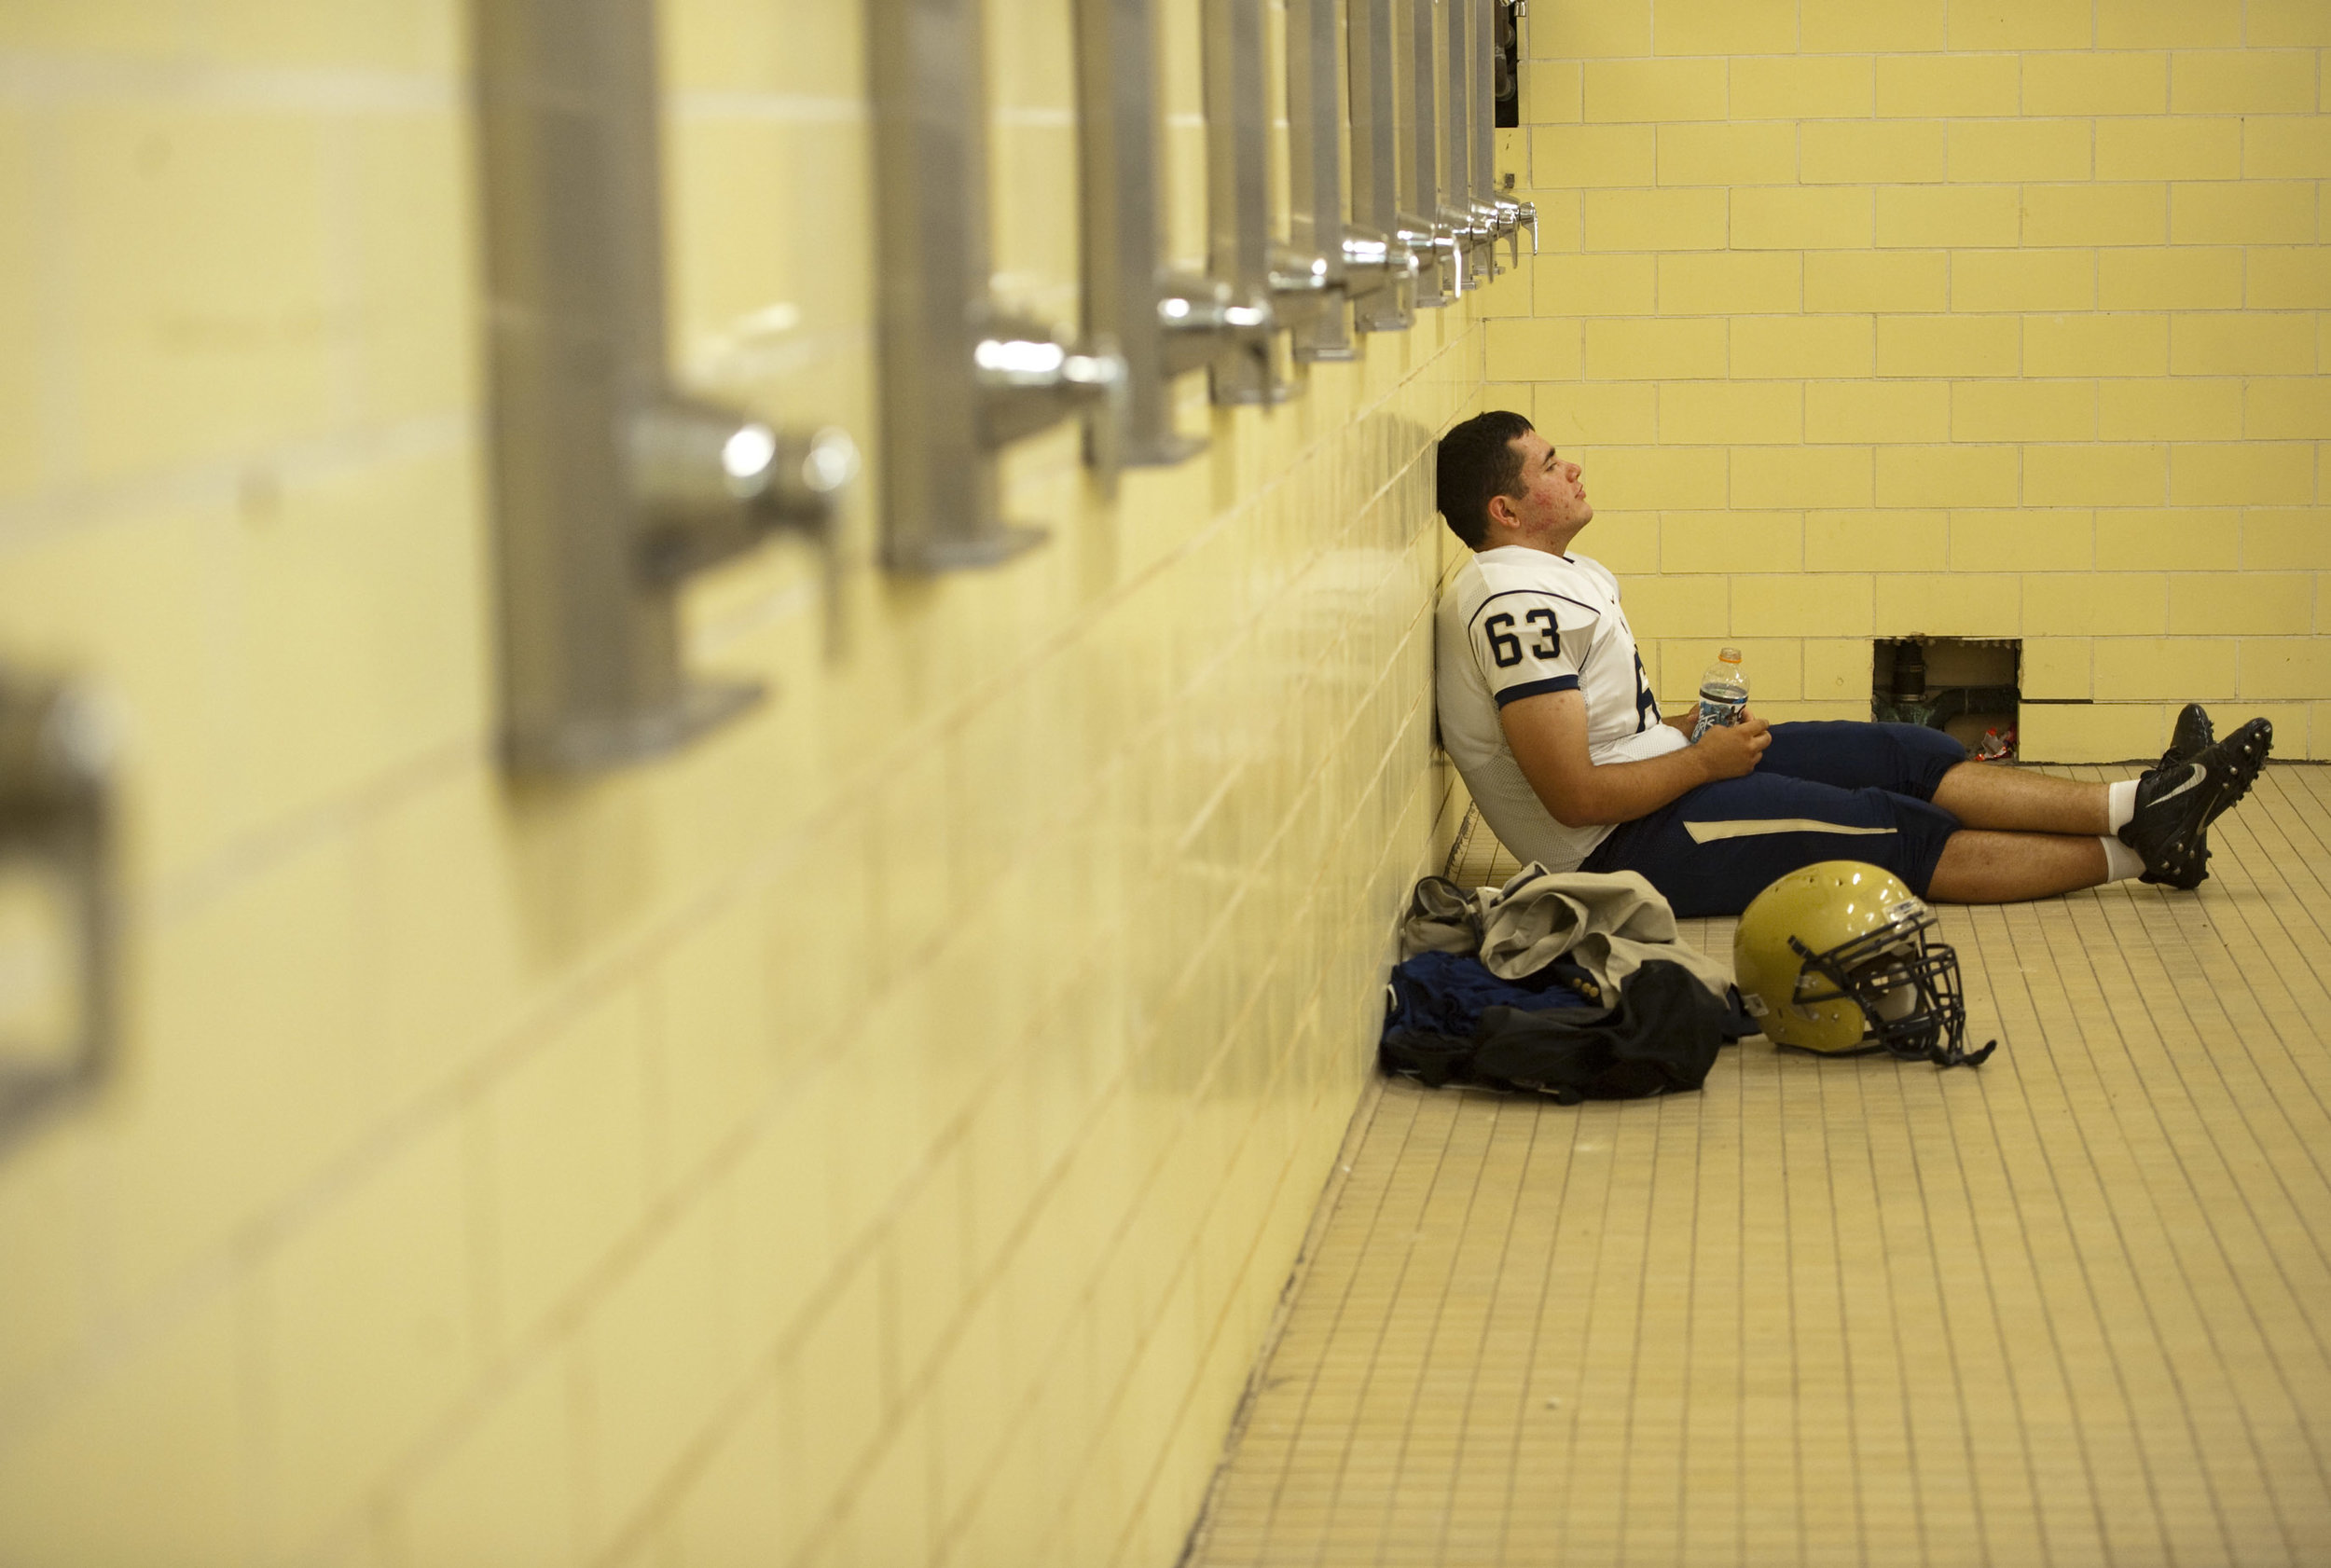 Franklin Regional's Joe Cattani pauses for a moment in the shower before playing McKeesport on Friday, Sept. 2, 2016 in McKeesport. McKeesport won 14-7.